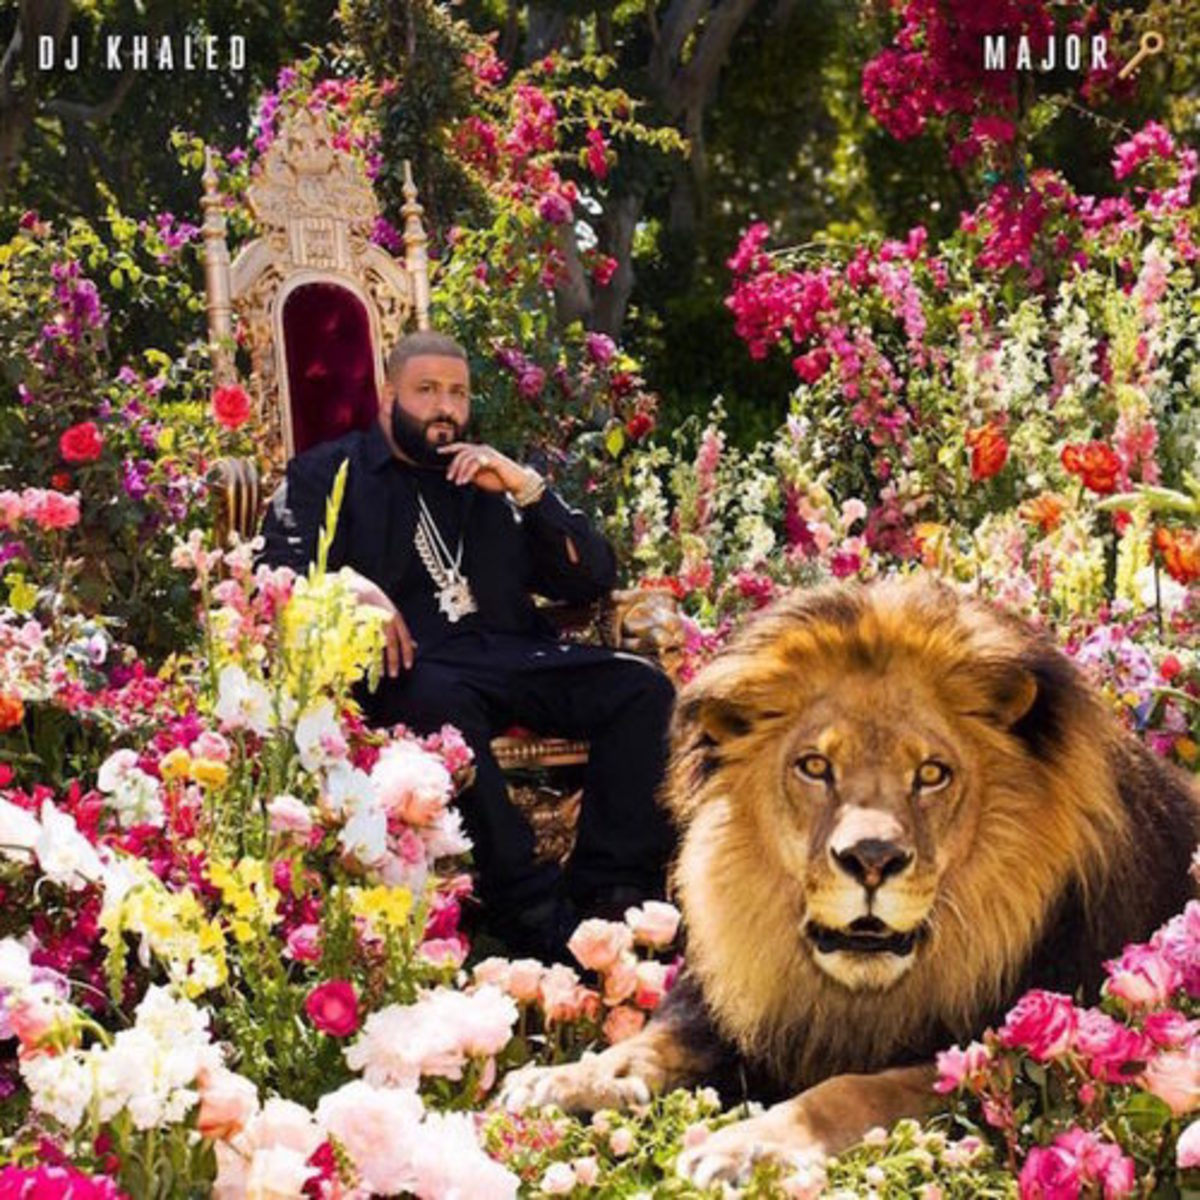 dj-khaled-major-key.jpg